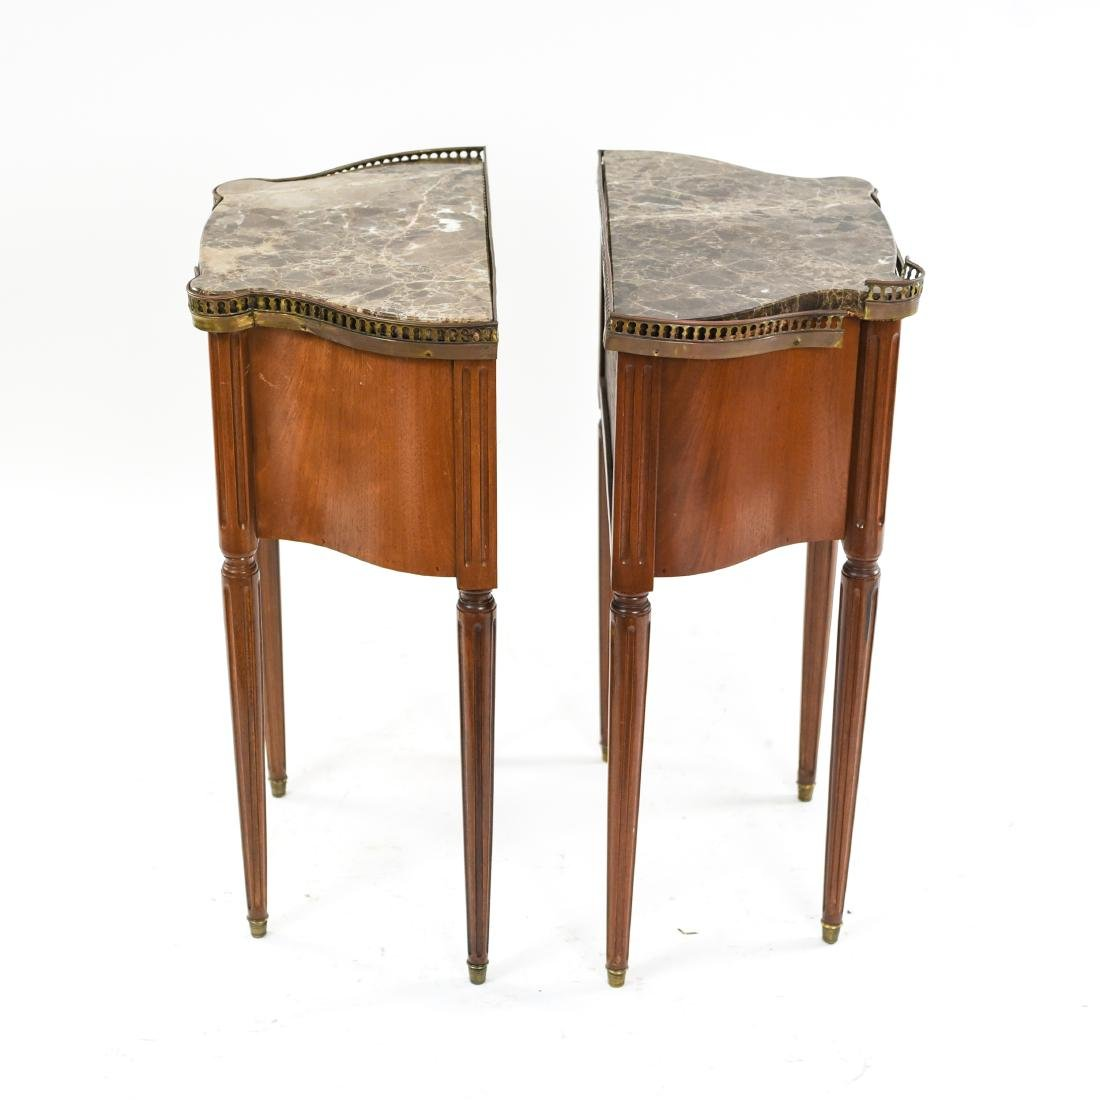 PAIR OF FRENCH MARBLE TOP SIDE TABLES - 8